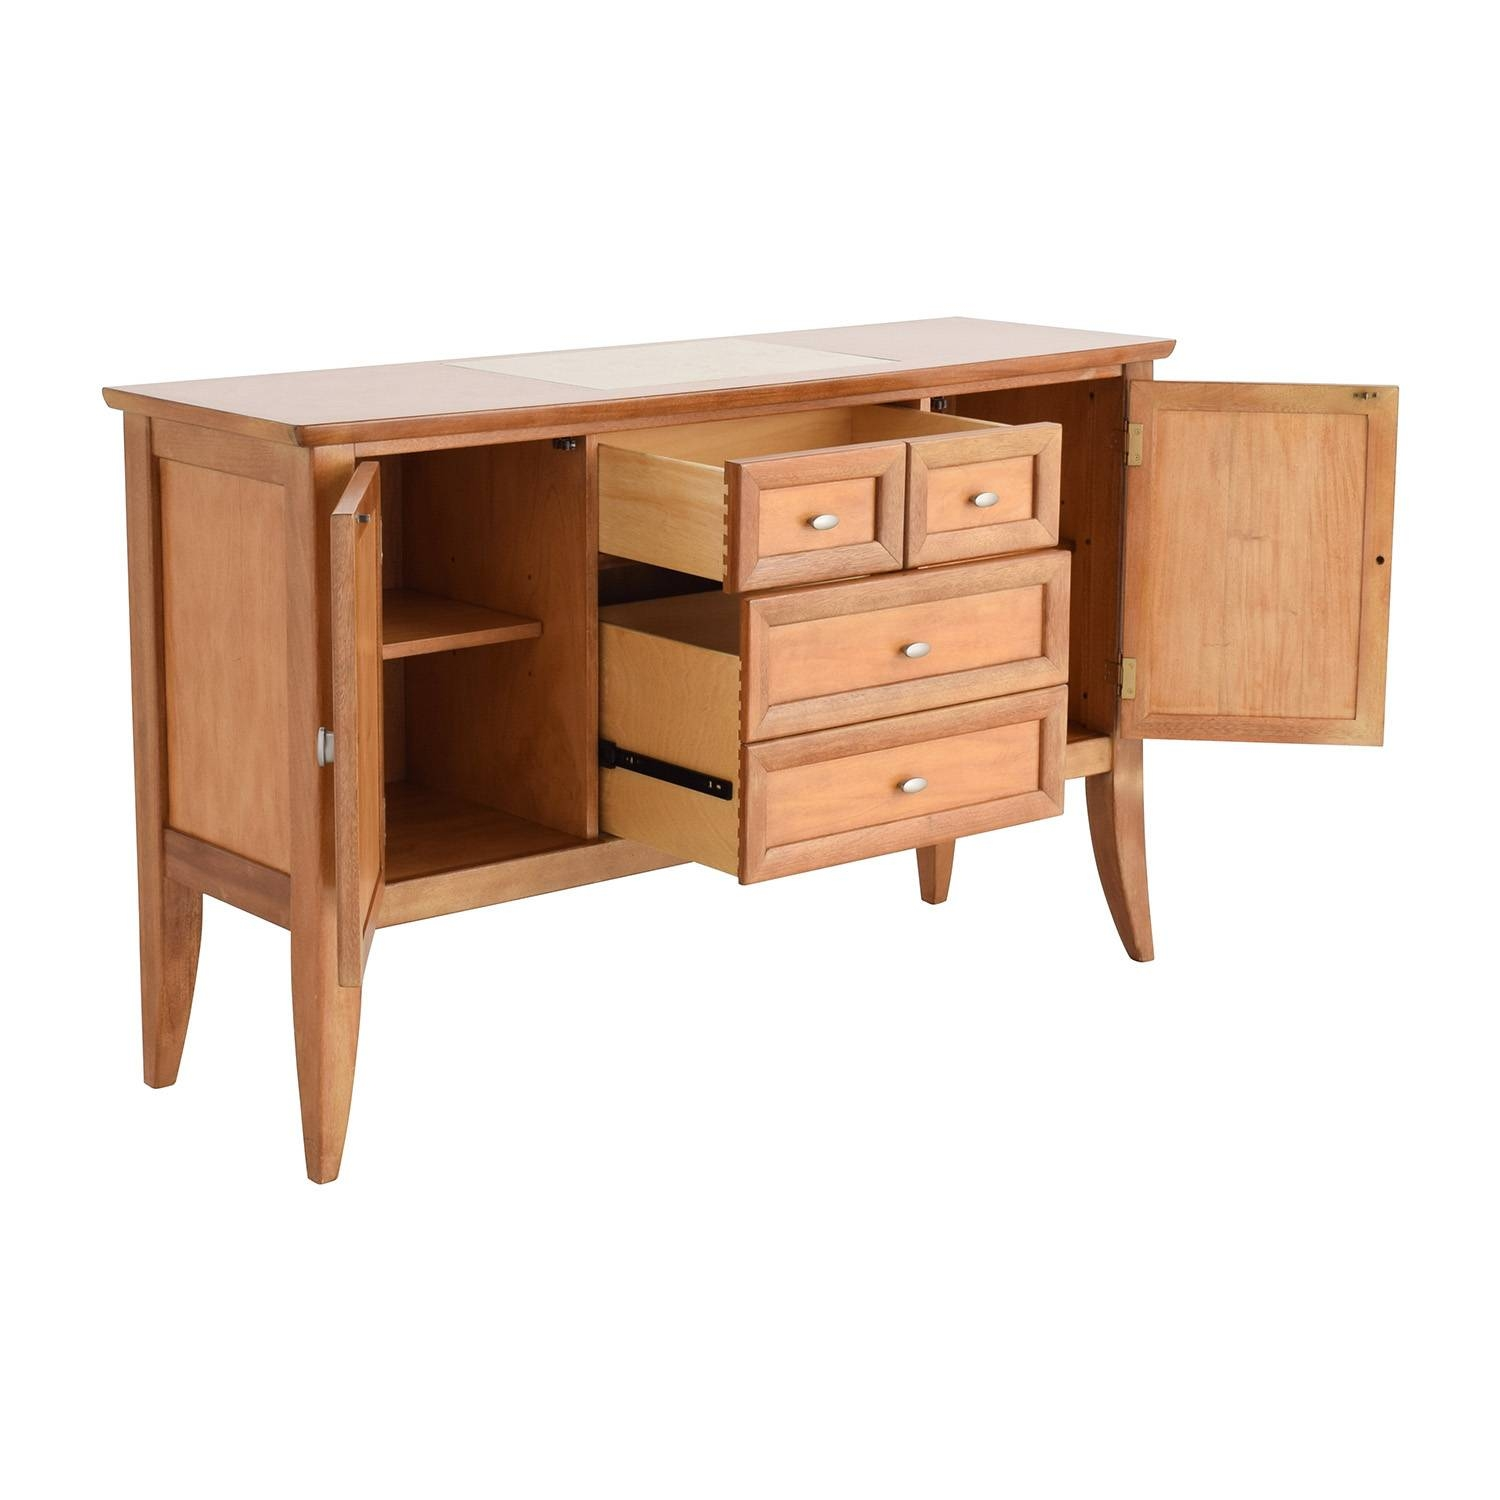 90% Off - Thomasville Thomasville Buffet Table / Storage within Thomasville Sideboards (Image 8 of 15)